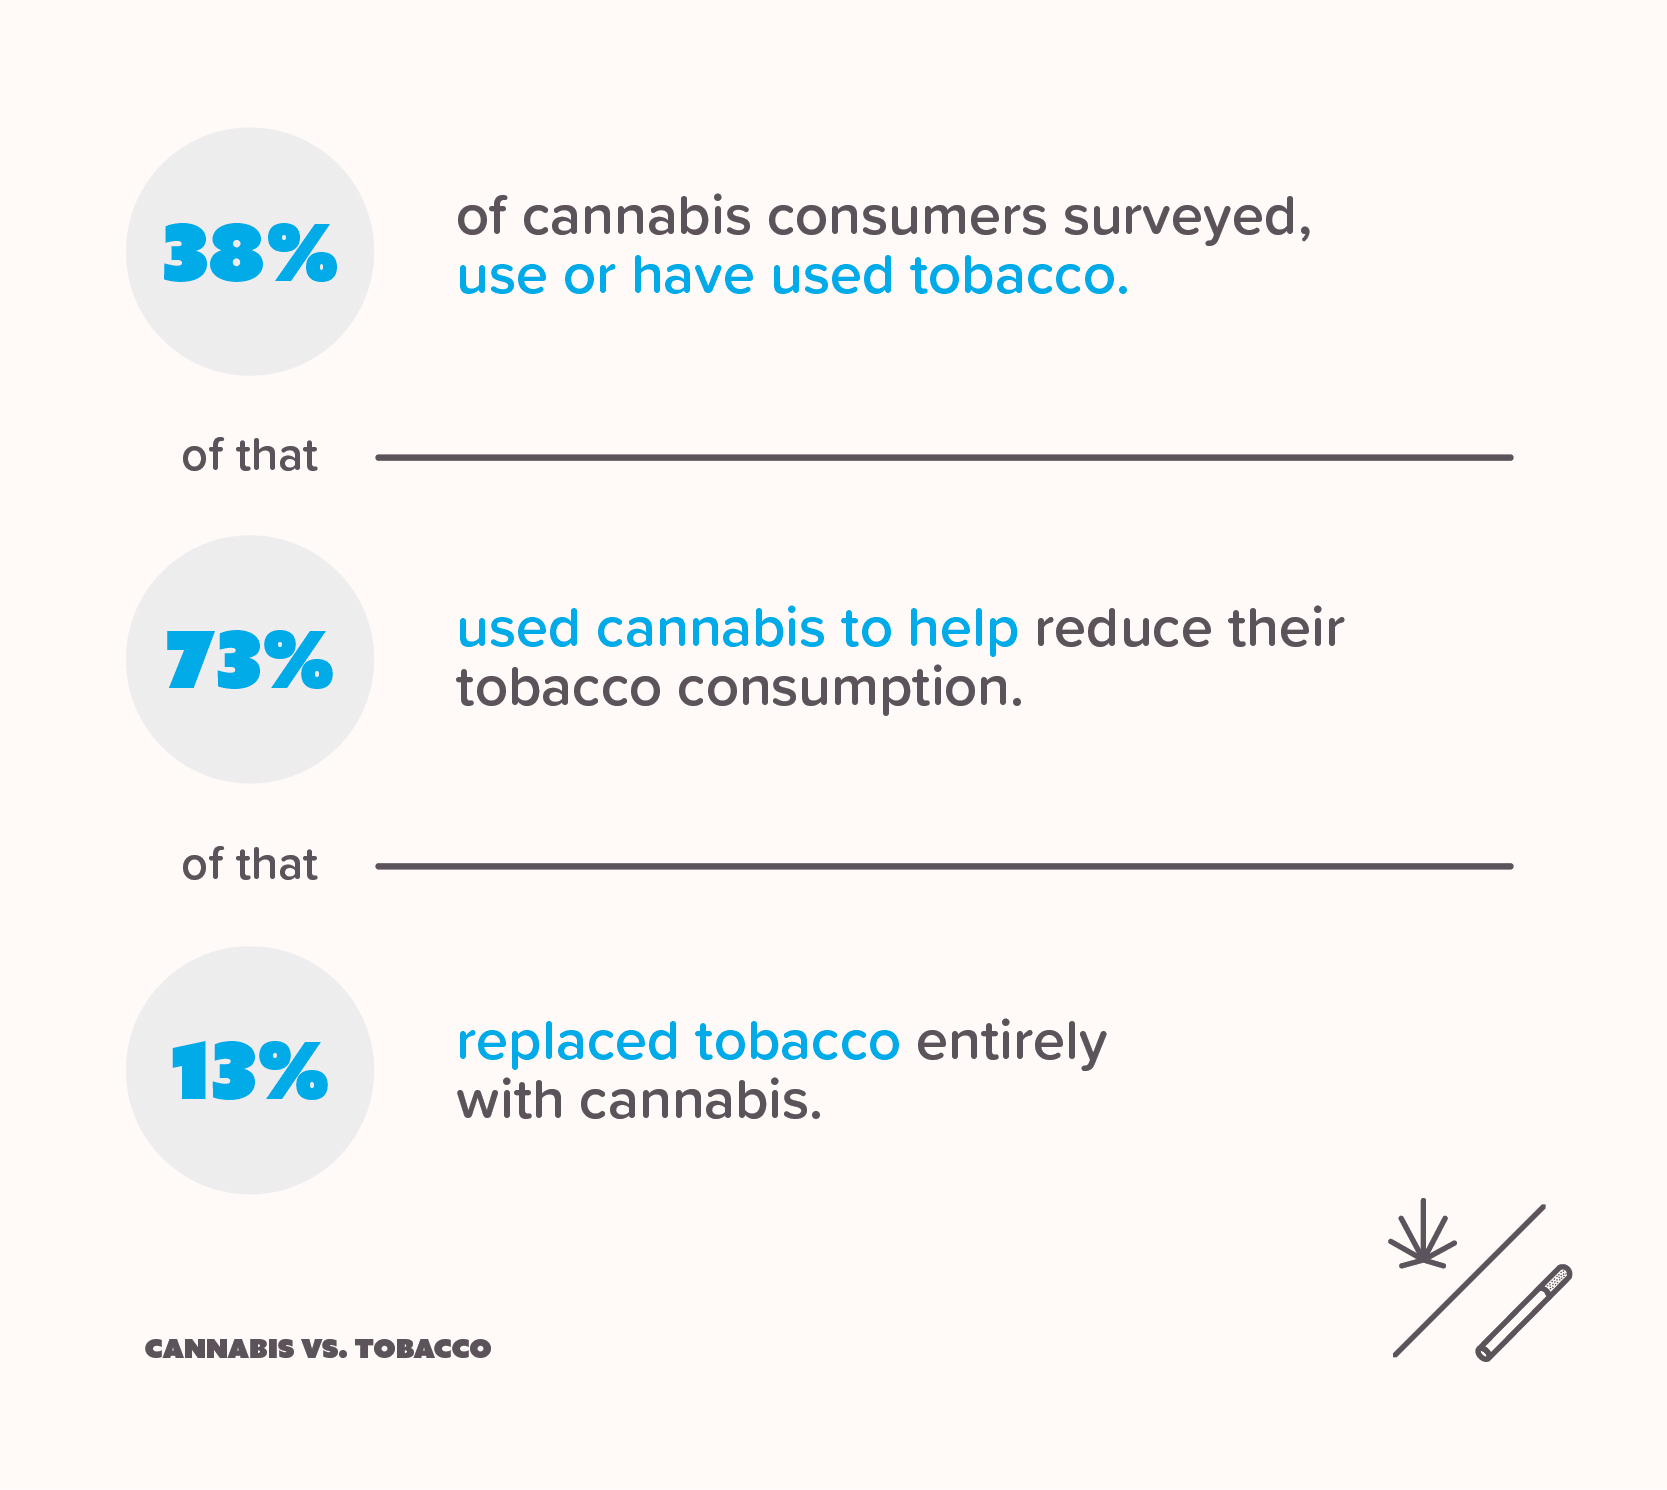 Infographic showing the percent of consumers who replace tobacco with marijuana